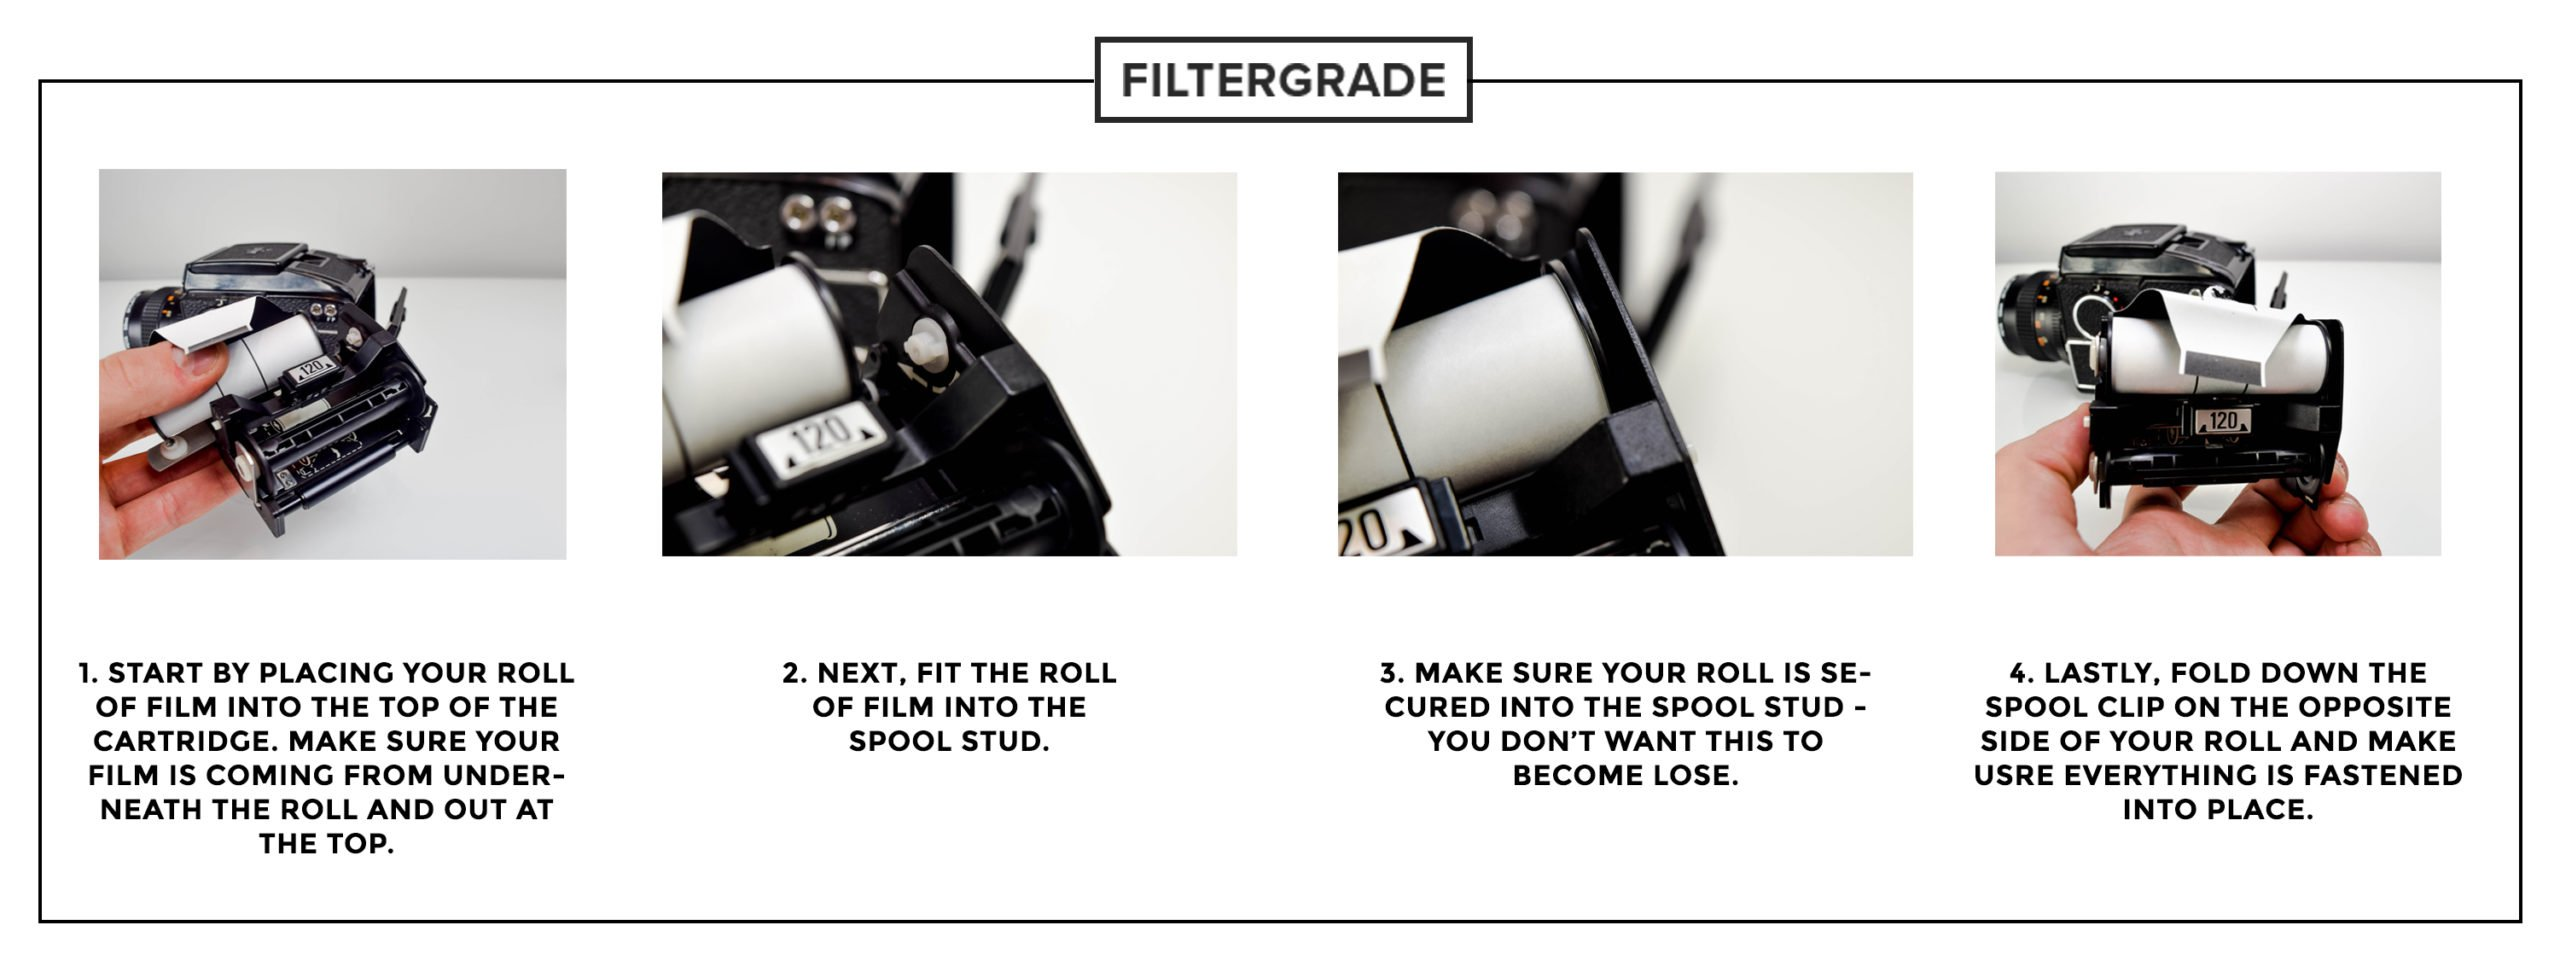 1 Demo - How to Load 120mm Film into Your Mamiya M645 - Film Photography - Filtergrade